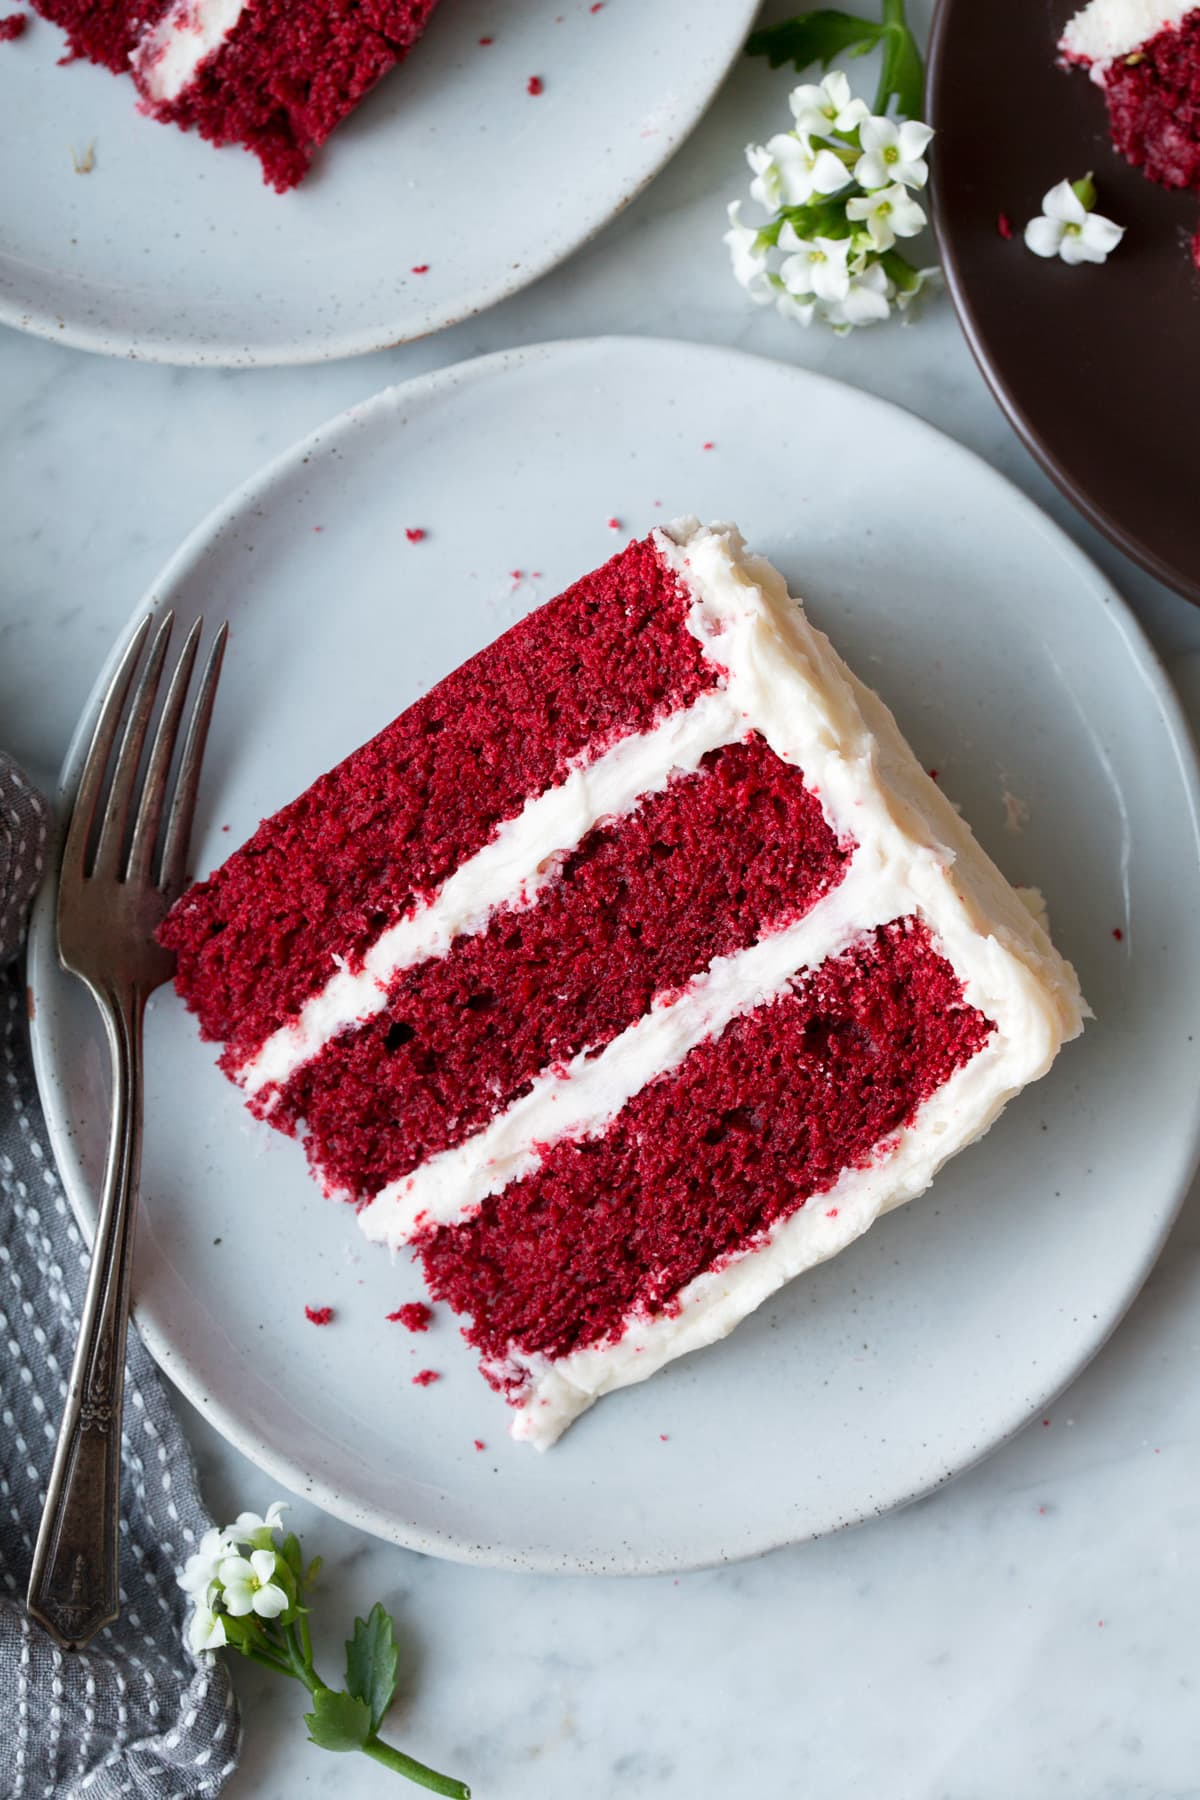 Overhead image of slice of Red Velvet Cake on a light grey serving plate.